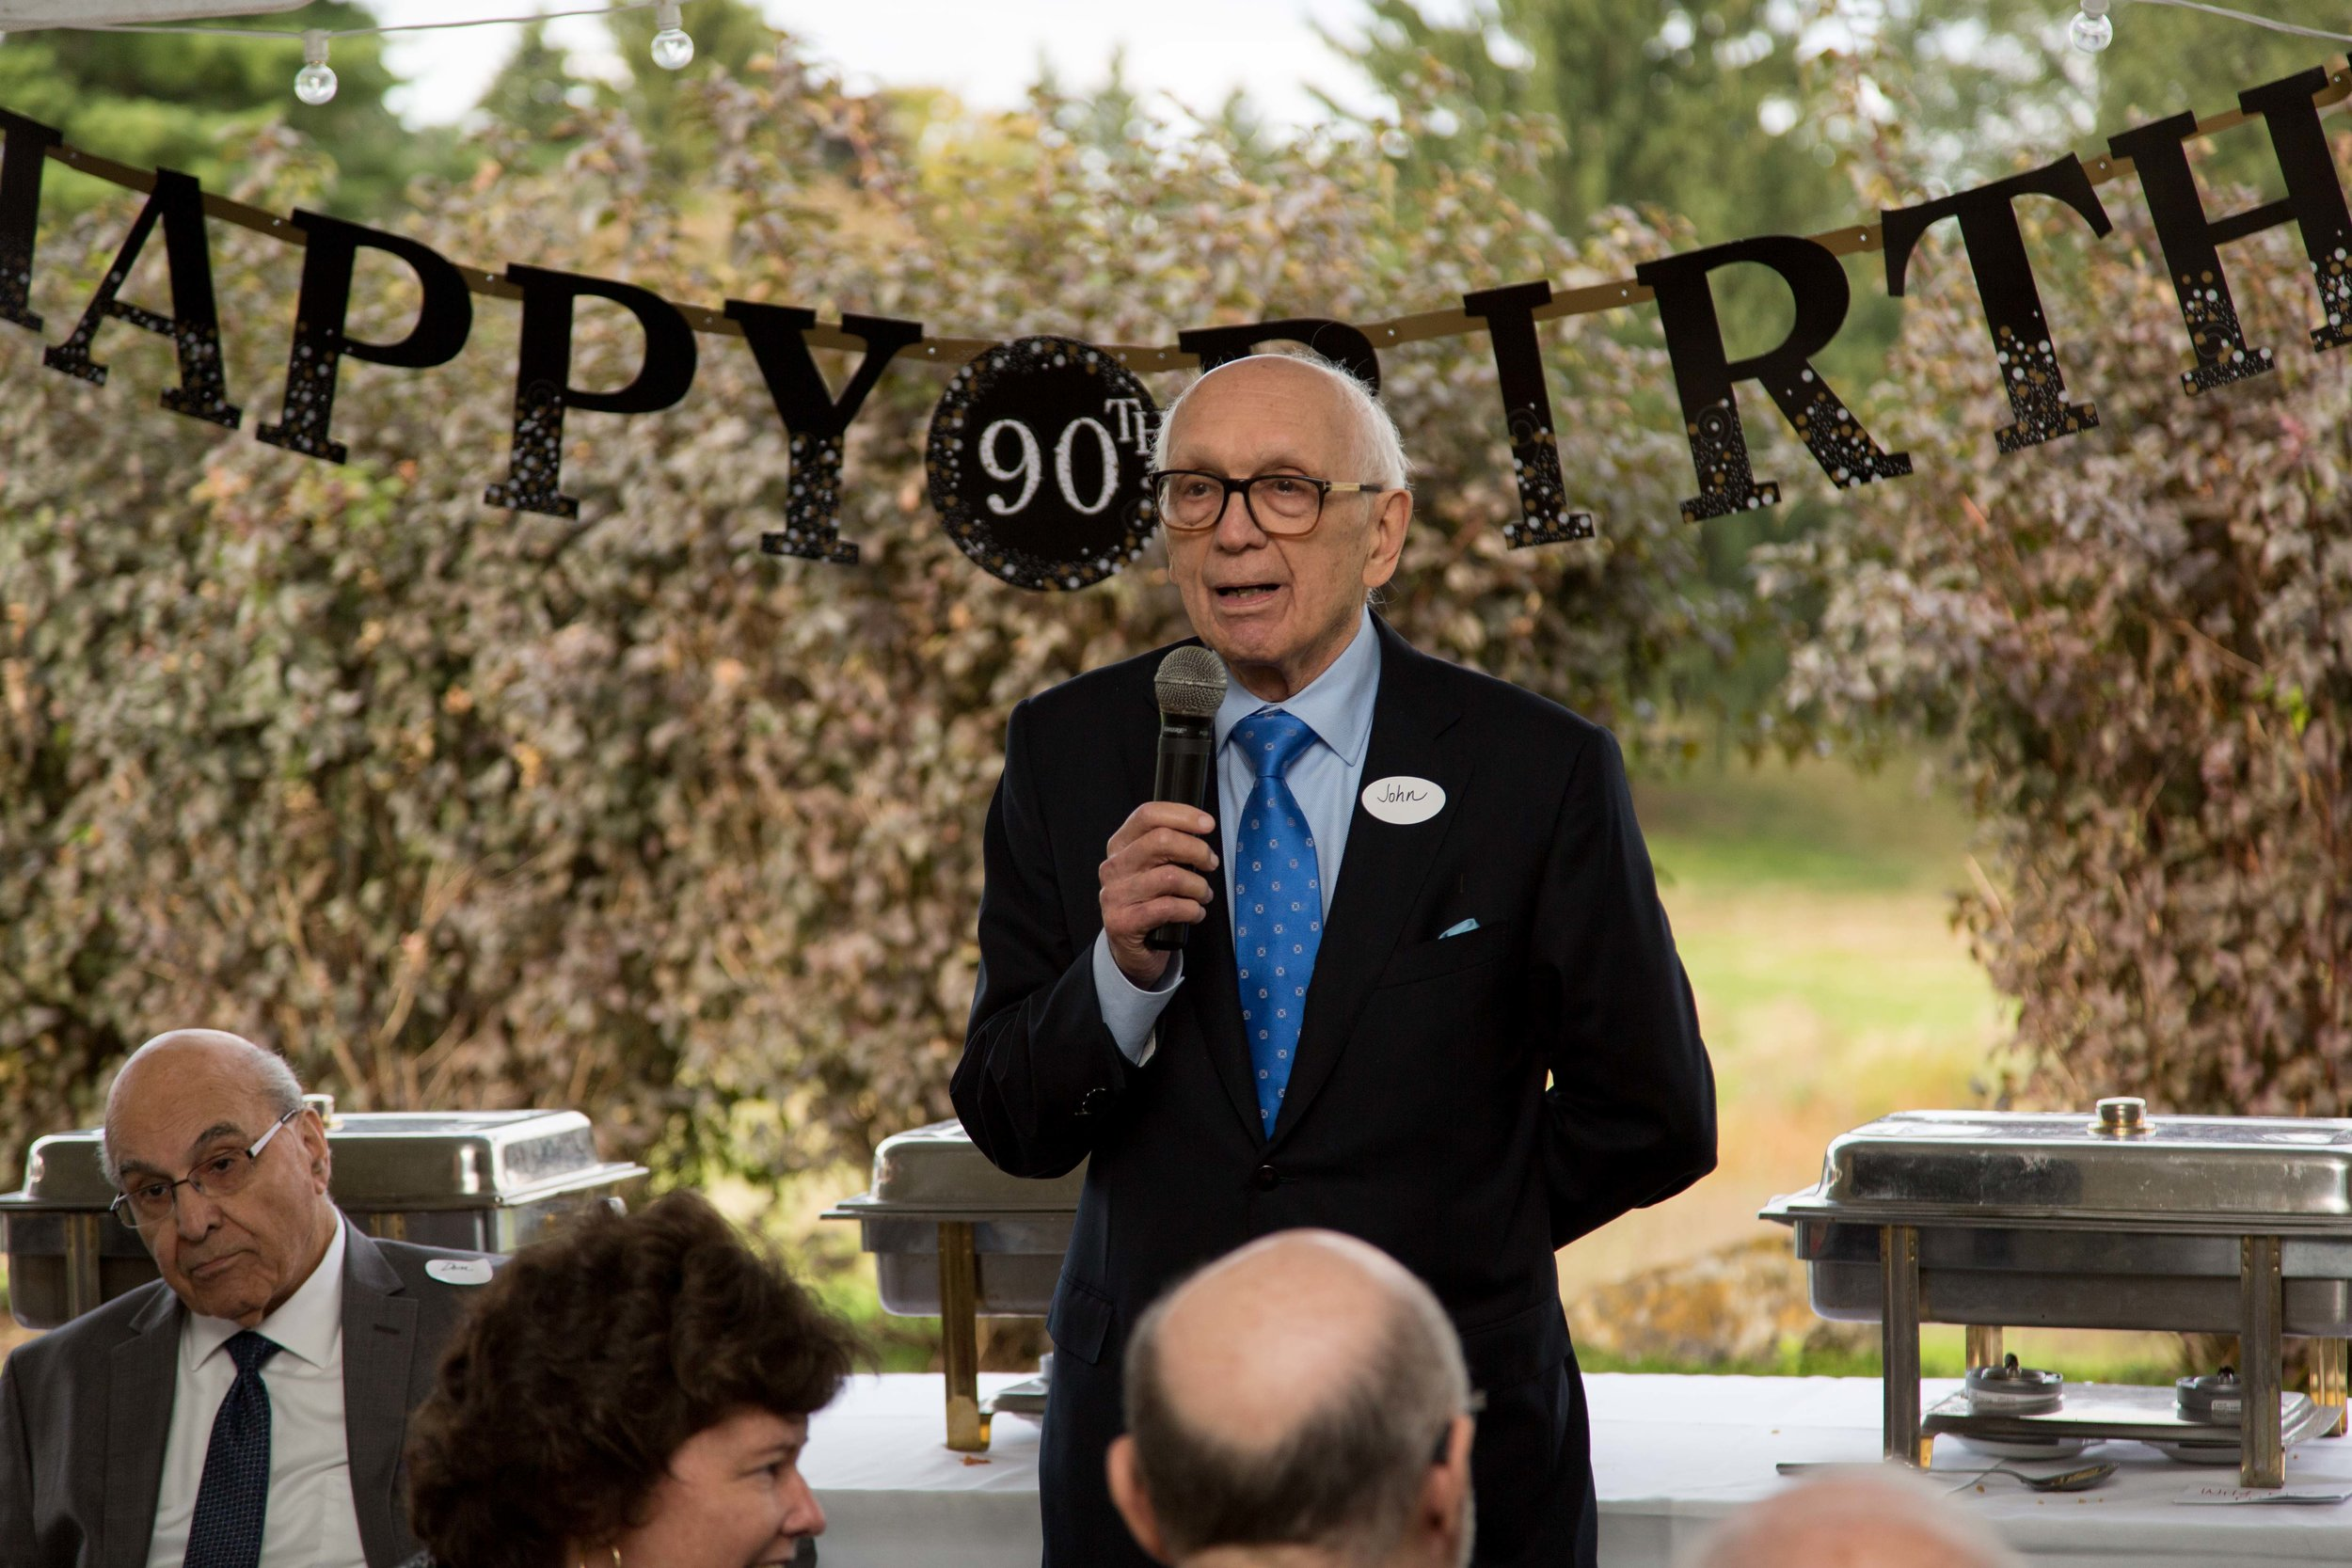 George Sella 90th Birthday at Newton Country Club by Dan Schenker Photography-22.jpg